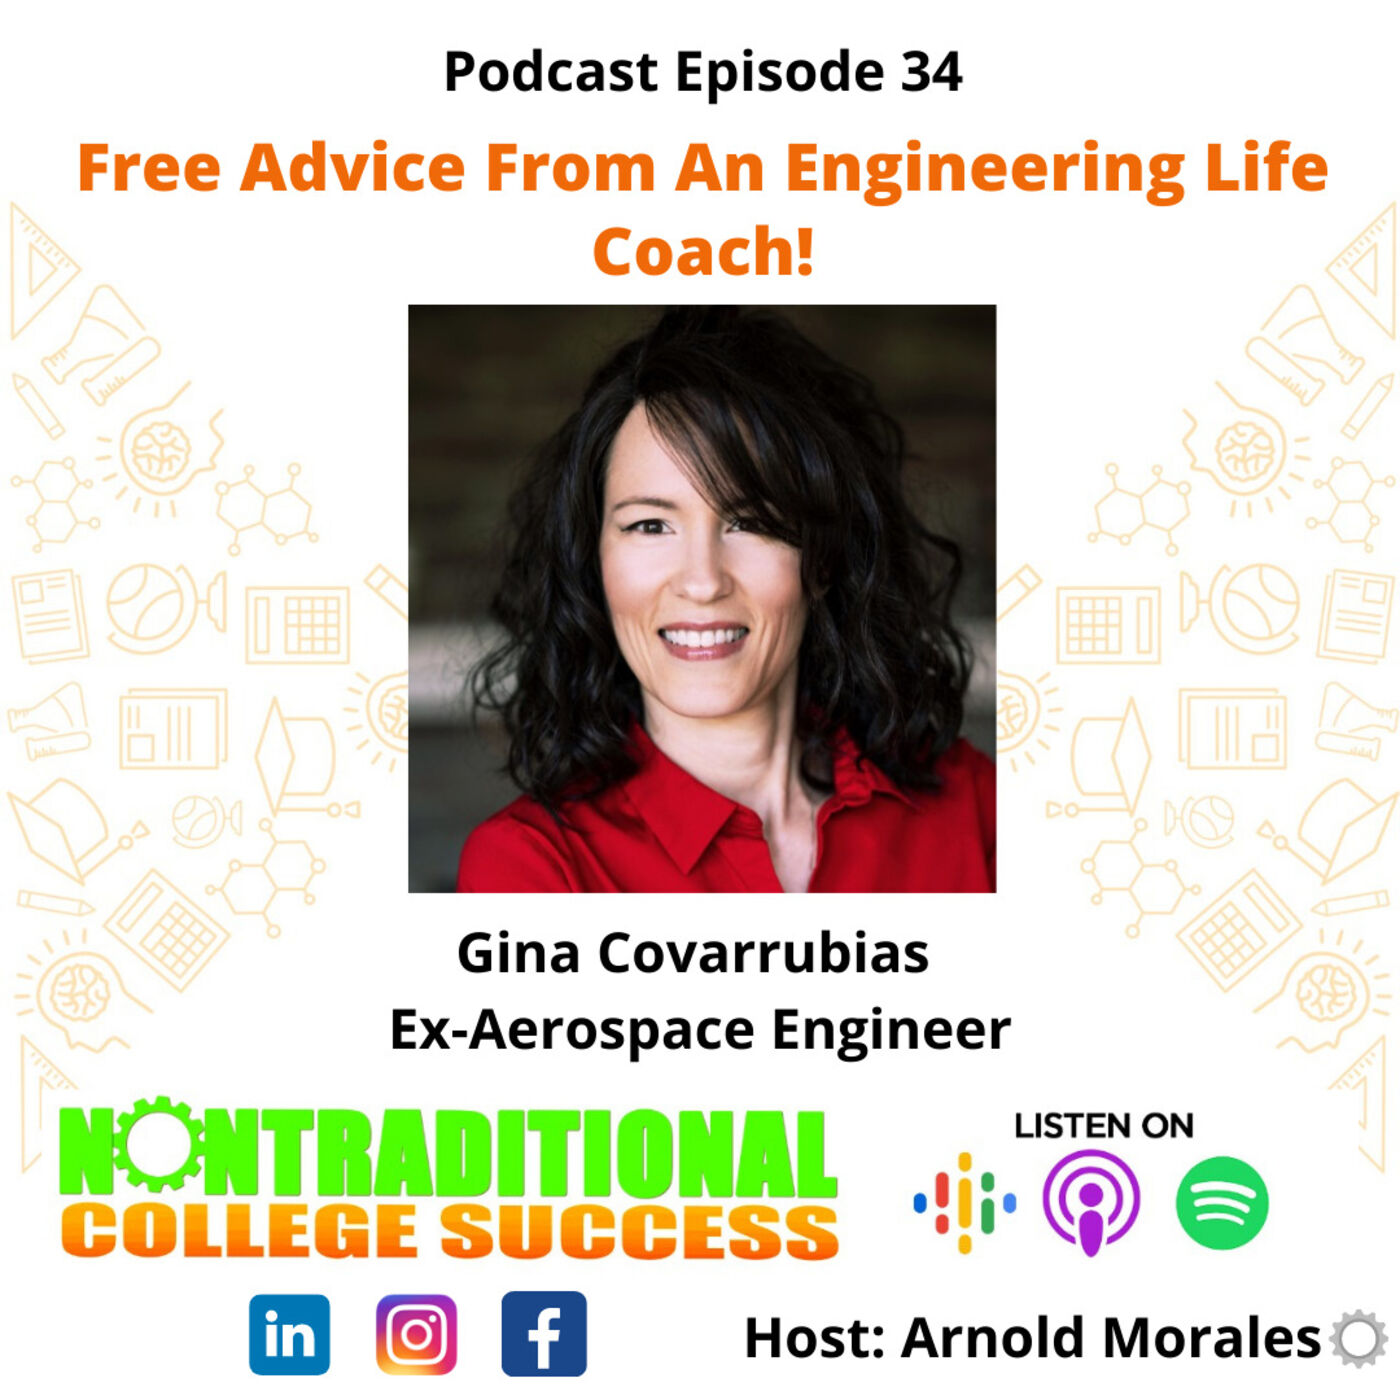 Free Advice From An Engineering Life Coach! with Gina Covarrubias. Ep. 34